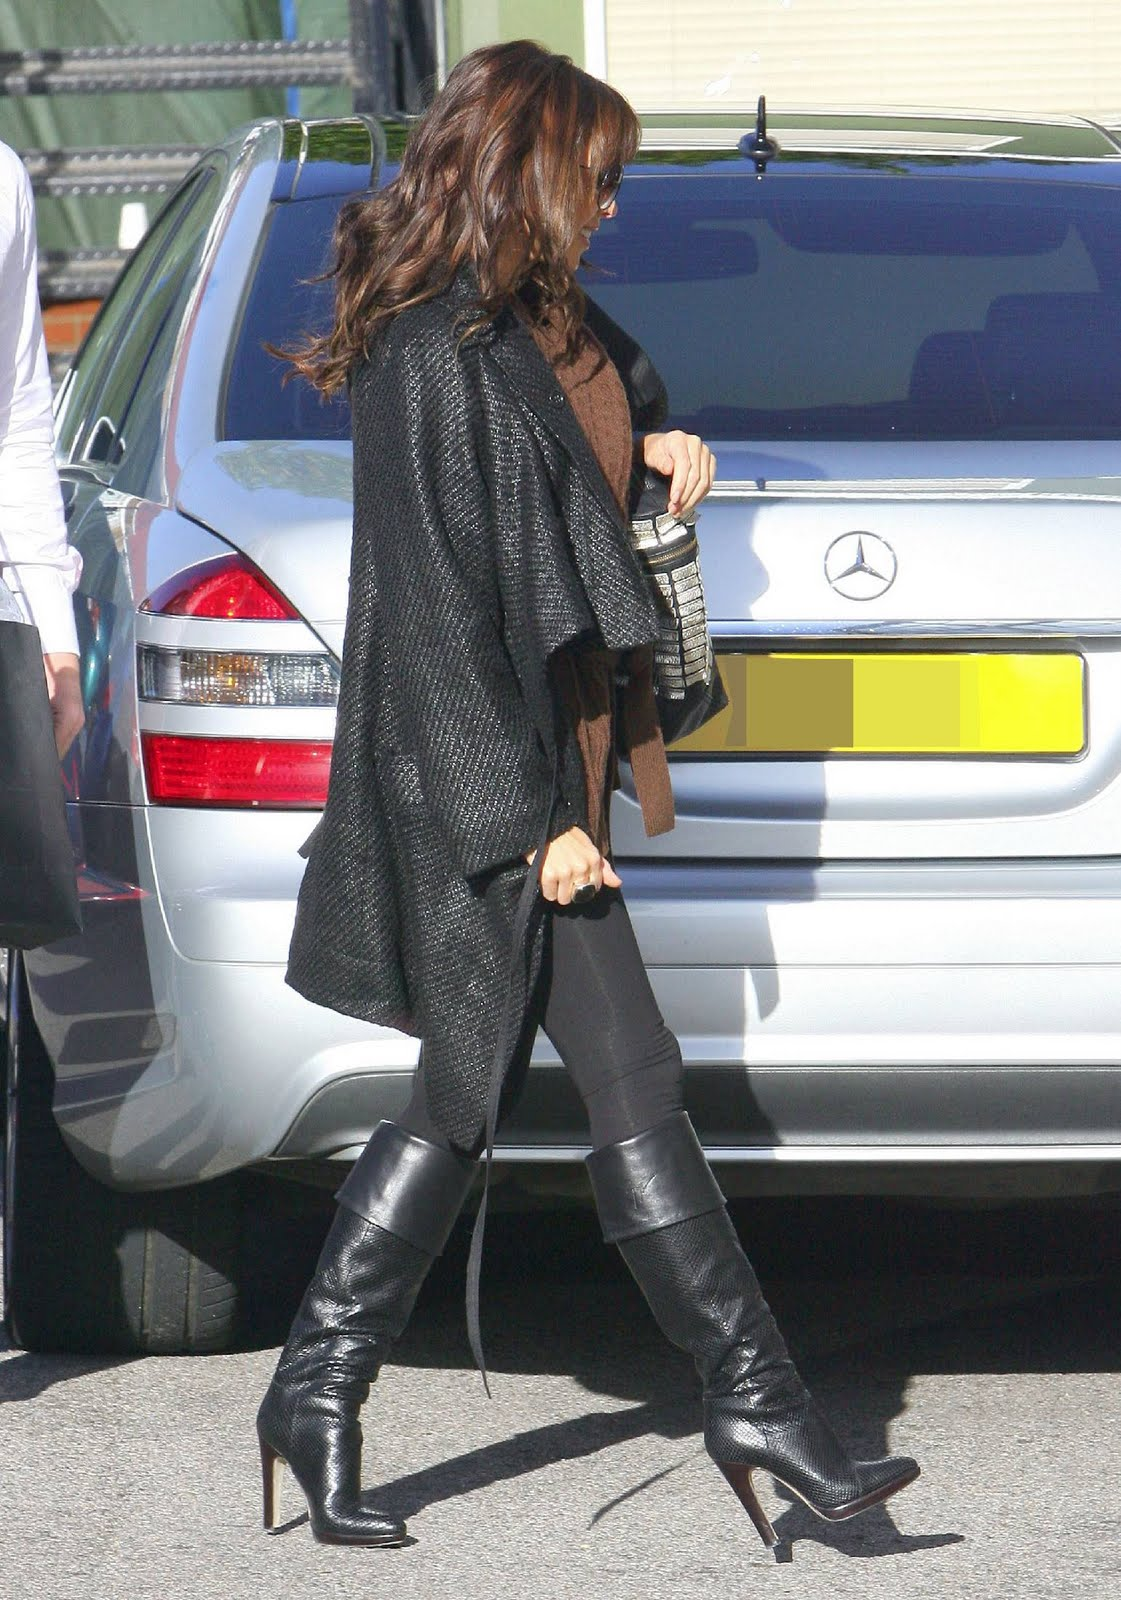 http://2.bp.blogspot.com/-80CkC-jAJhk/TkOSnQDu0CI/AAAAAAAAKro/OImqlb1GGT8/s1600/74559-dannii-minogue-arrives-at-the-x-factor-itv-s.jpg